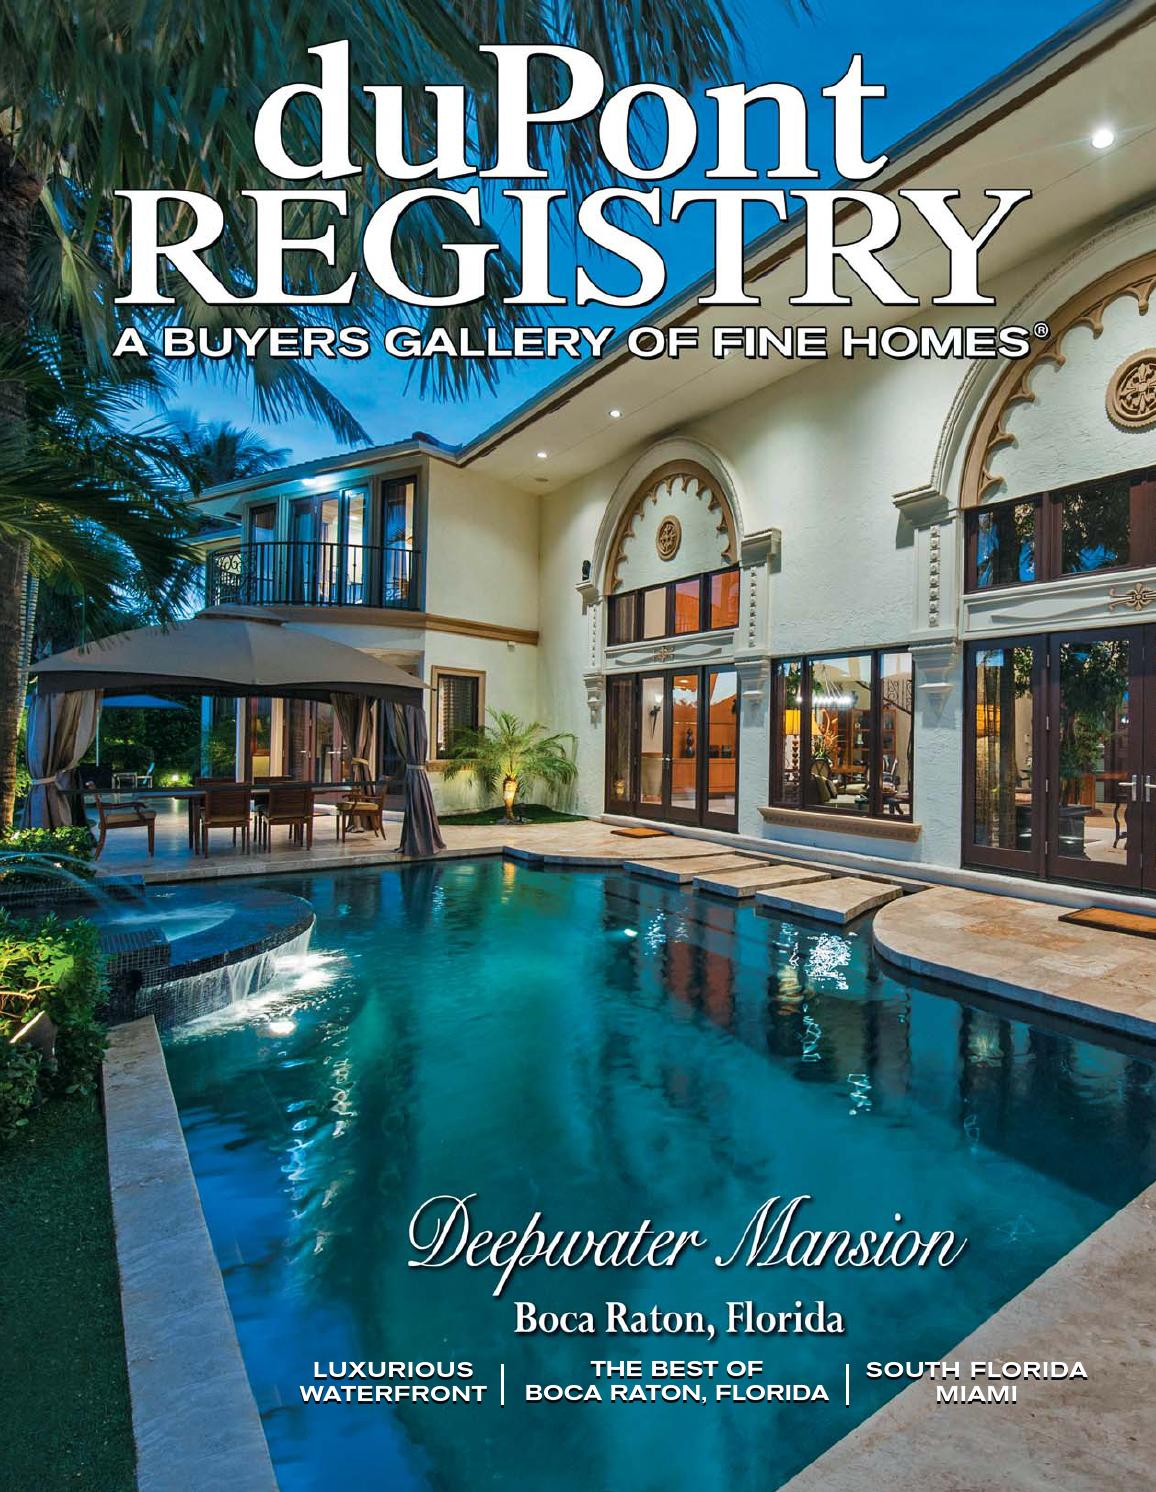 duPontREGISTRY Homes March 2016 by duPont REGISTRY - issuu